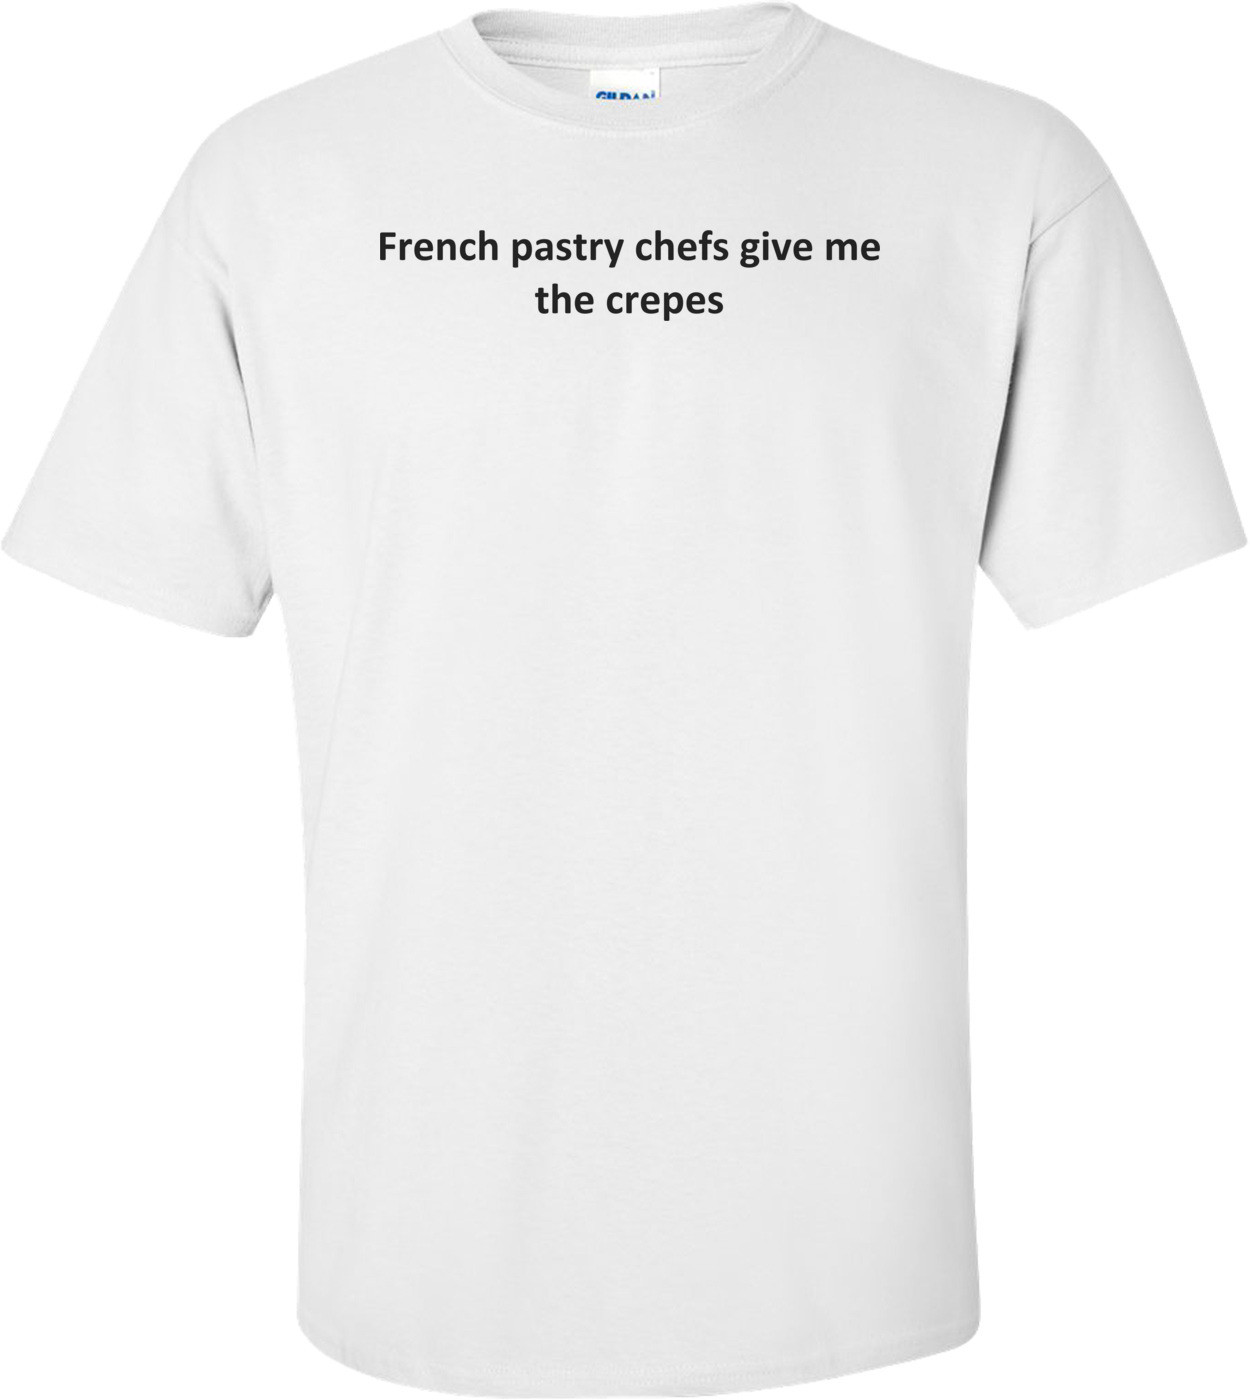 French pastry chefs give me the crepes T-Shirt